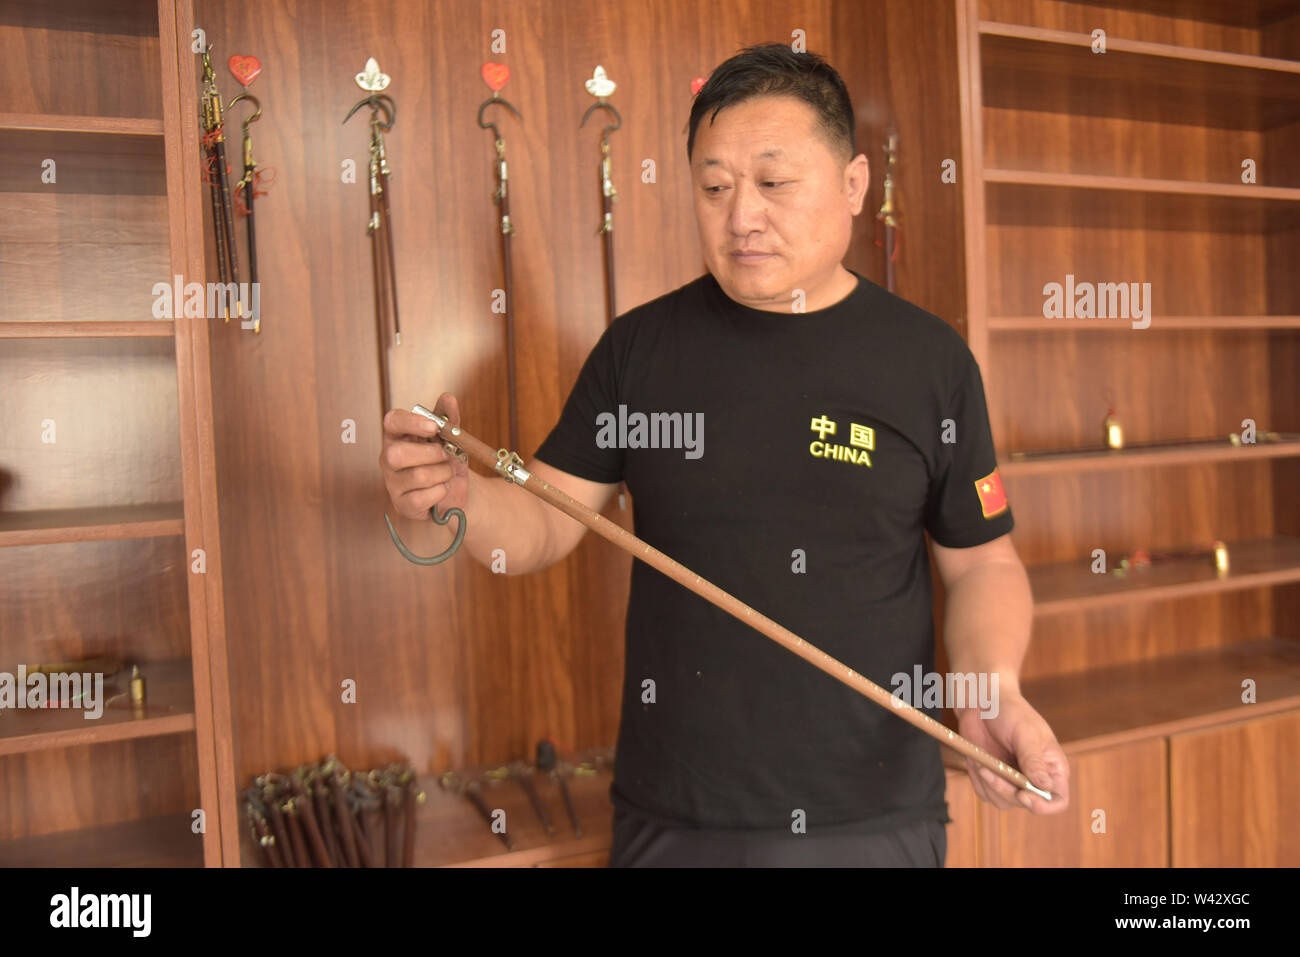 (190719) -- QINGDAO, July 19, 2019 (Xinhua) -- Sun Lianyong, a steelyard craftsman, shows a newly-made steelyard at his workshop in Jinkou Town of Jimo District in Qingdao, east China's Shandong Province, July 19, 2019. Steelyard, a traditional weighing instrument with a long history, used to be popular for its low cost and good portability. In the early 1990s, there used to be more than 30 steelyard workshops in Jimo as the development of market economy pushed up people's demand for steelyards.   The 49-year-old craftsman Sun Lianyong is an inheritor of traditional steelyard making techniques - Stock Image